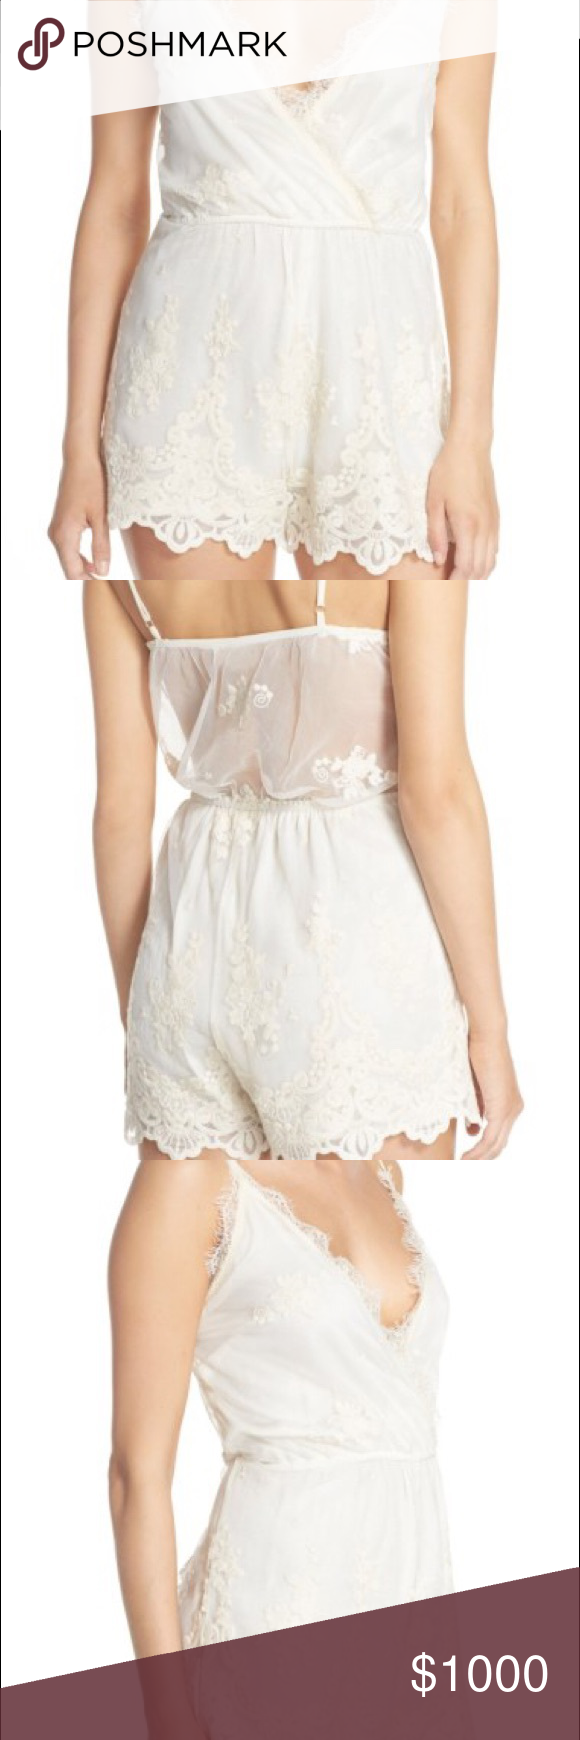 407ad8b0edd6 ISO Band of Gypsies Ivory Romper In search of Mesh Embroidered Romper in  the color Ivory